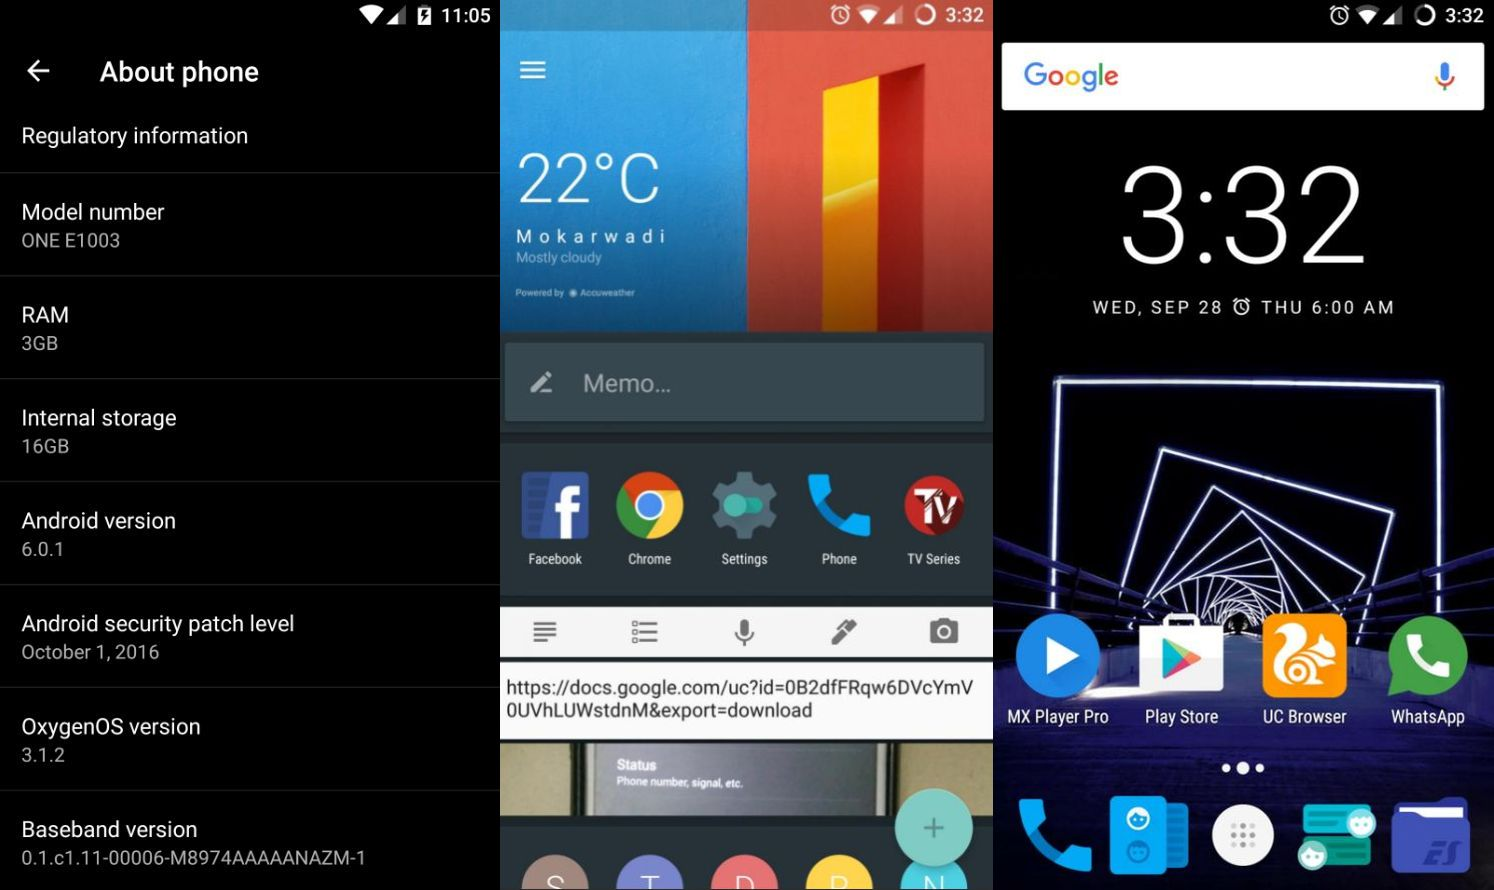 OnePlus X getting Android 6.0.1 Marshmallow